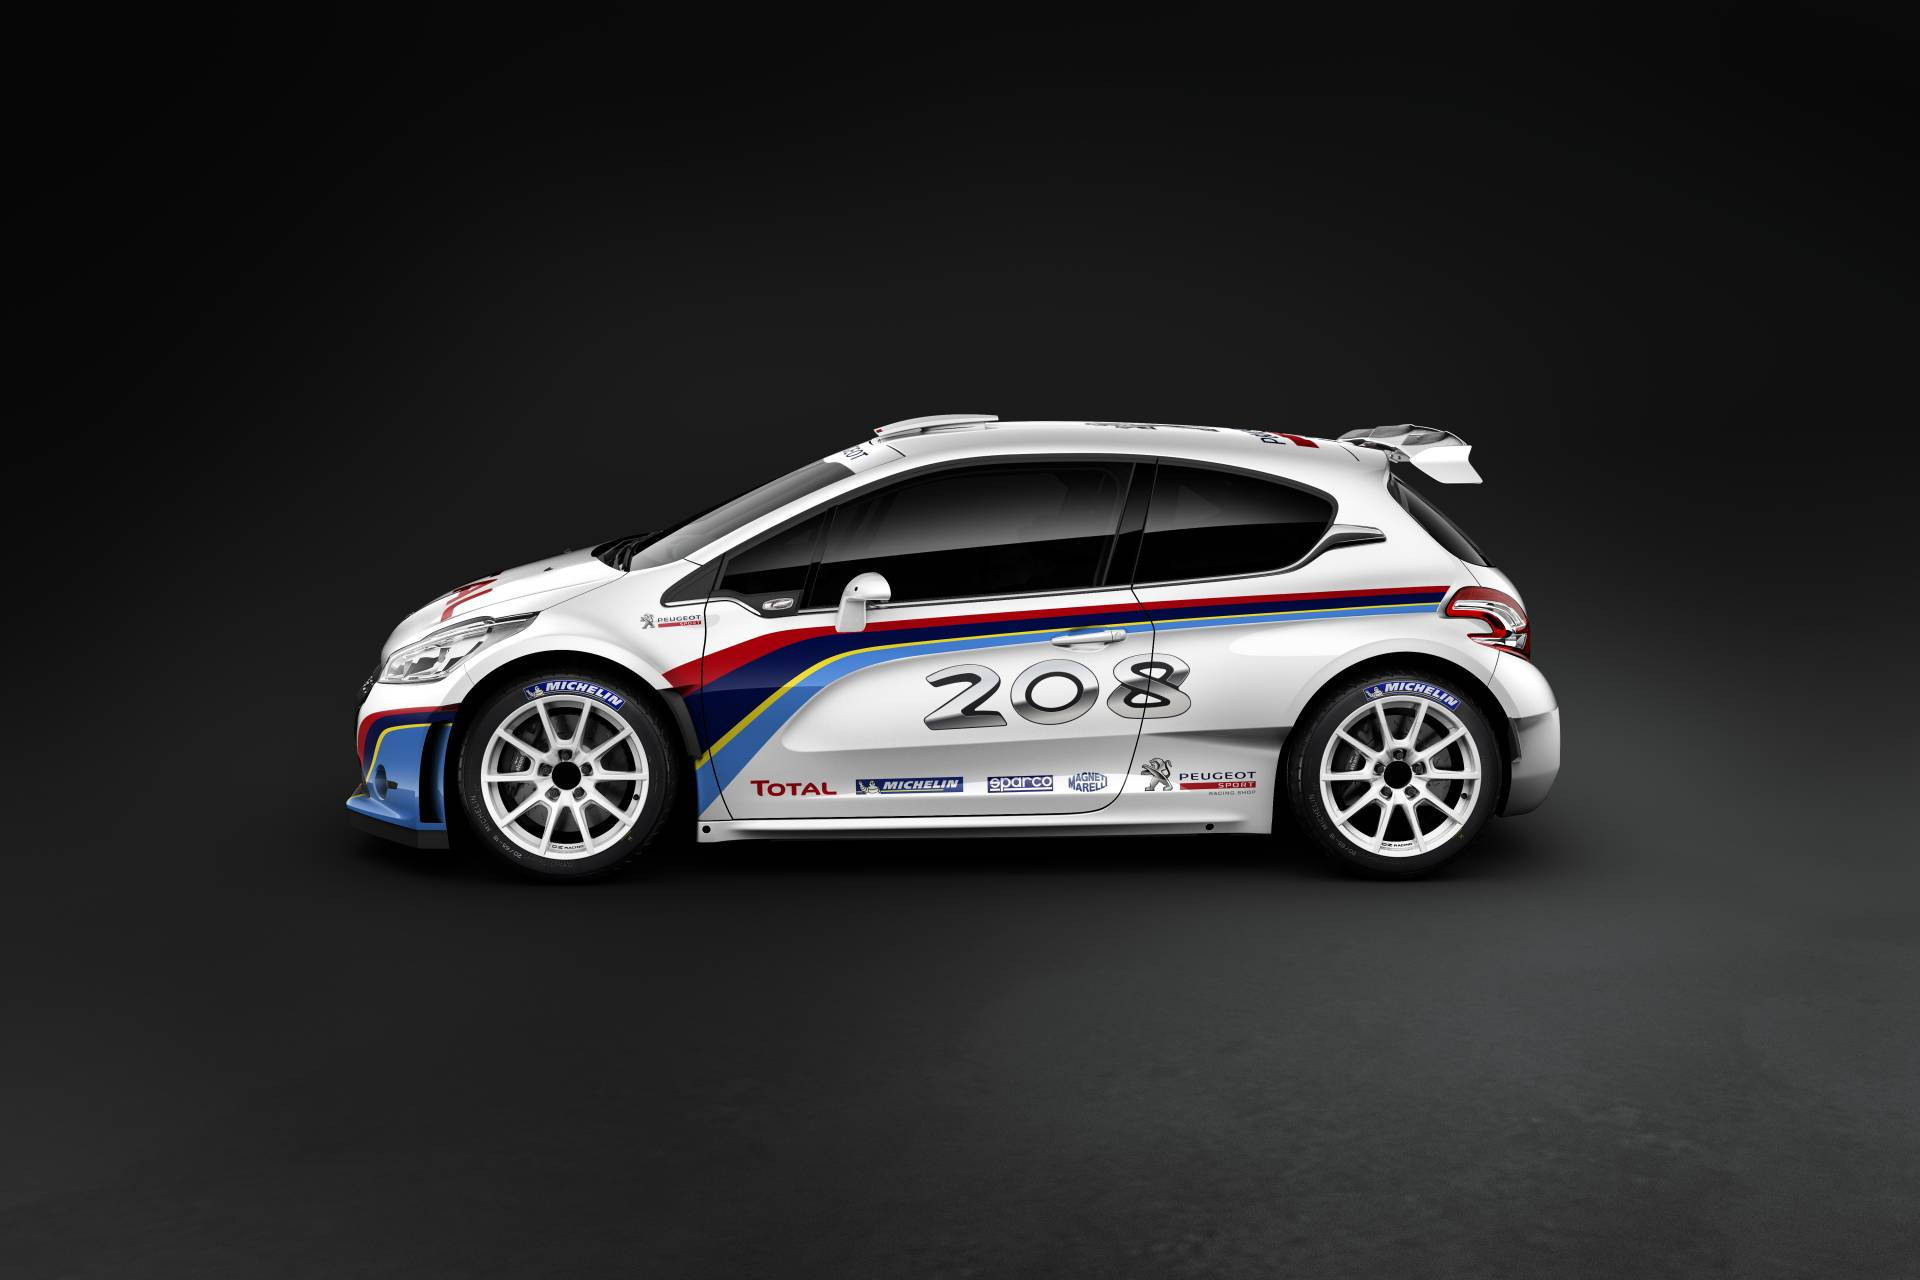 2013 Peugeot 208 R5 Rally News And Information, Research